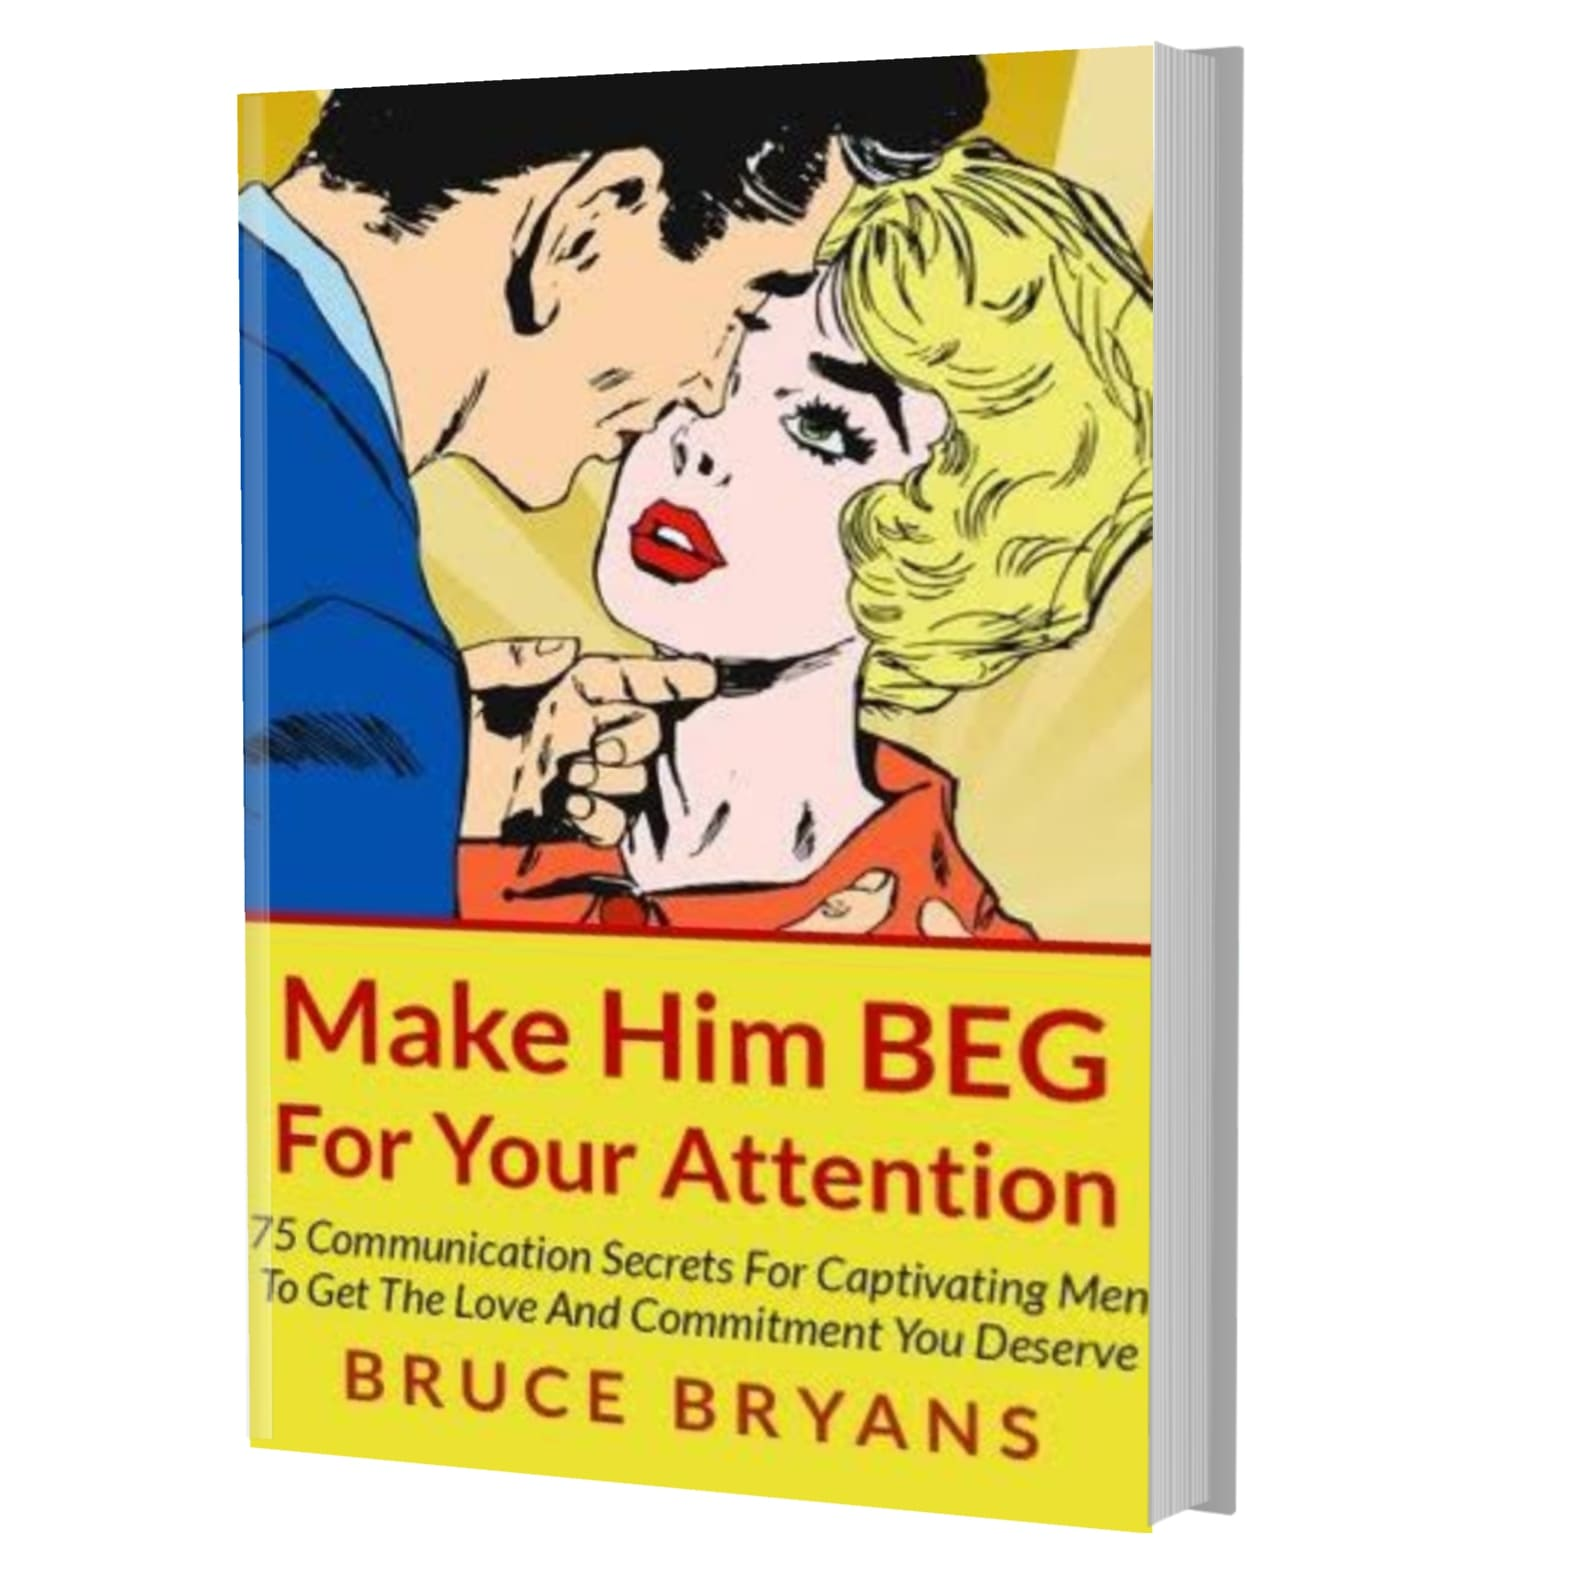 Make him beg for your attention- Bruce Bryans